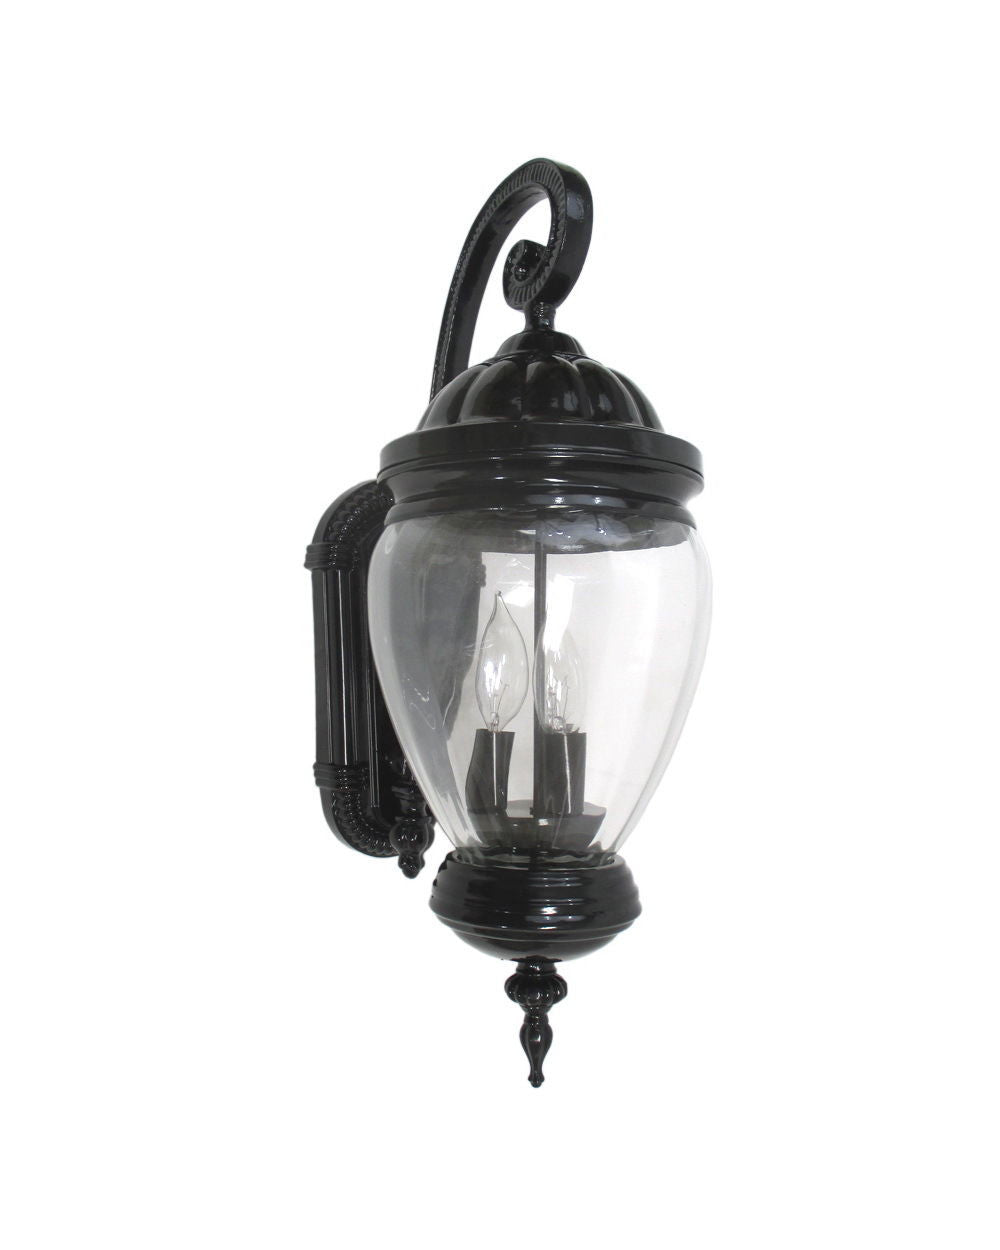 Epiphany Lighting 104973 BK One Light Cast Aluminum